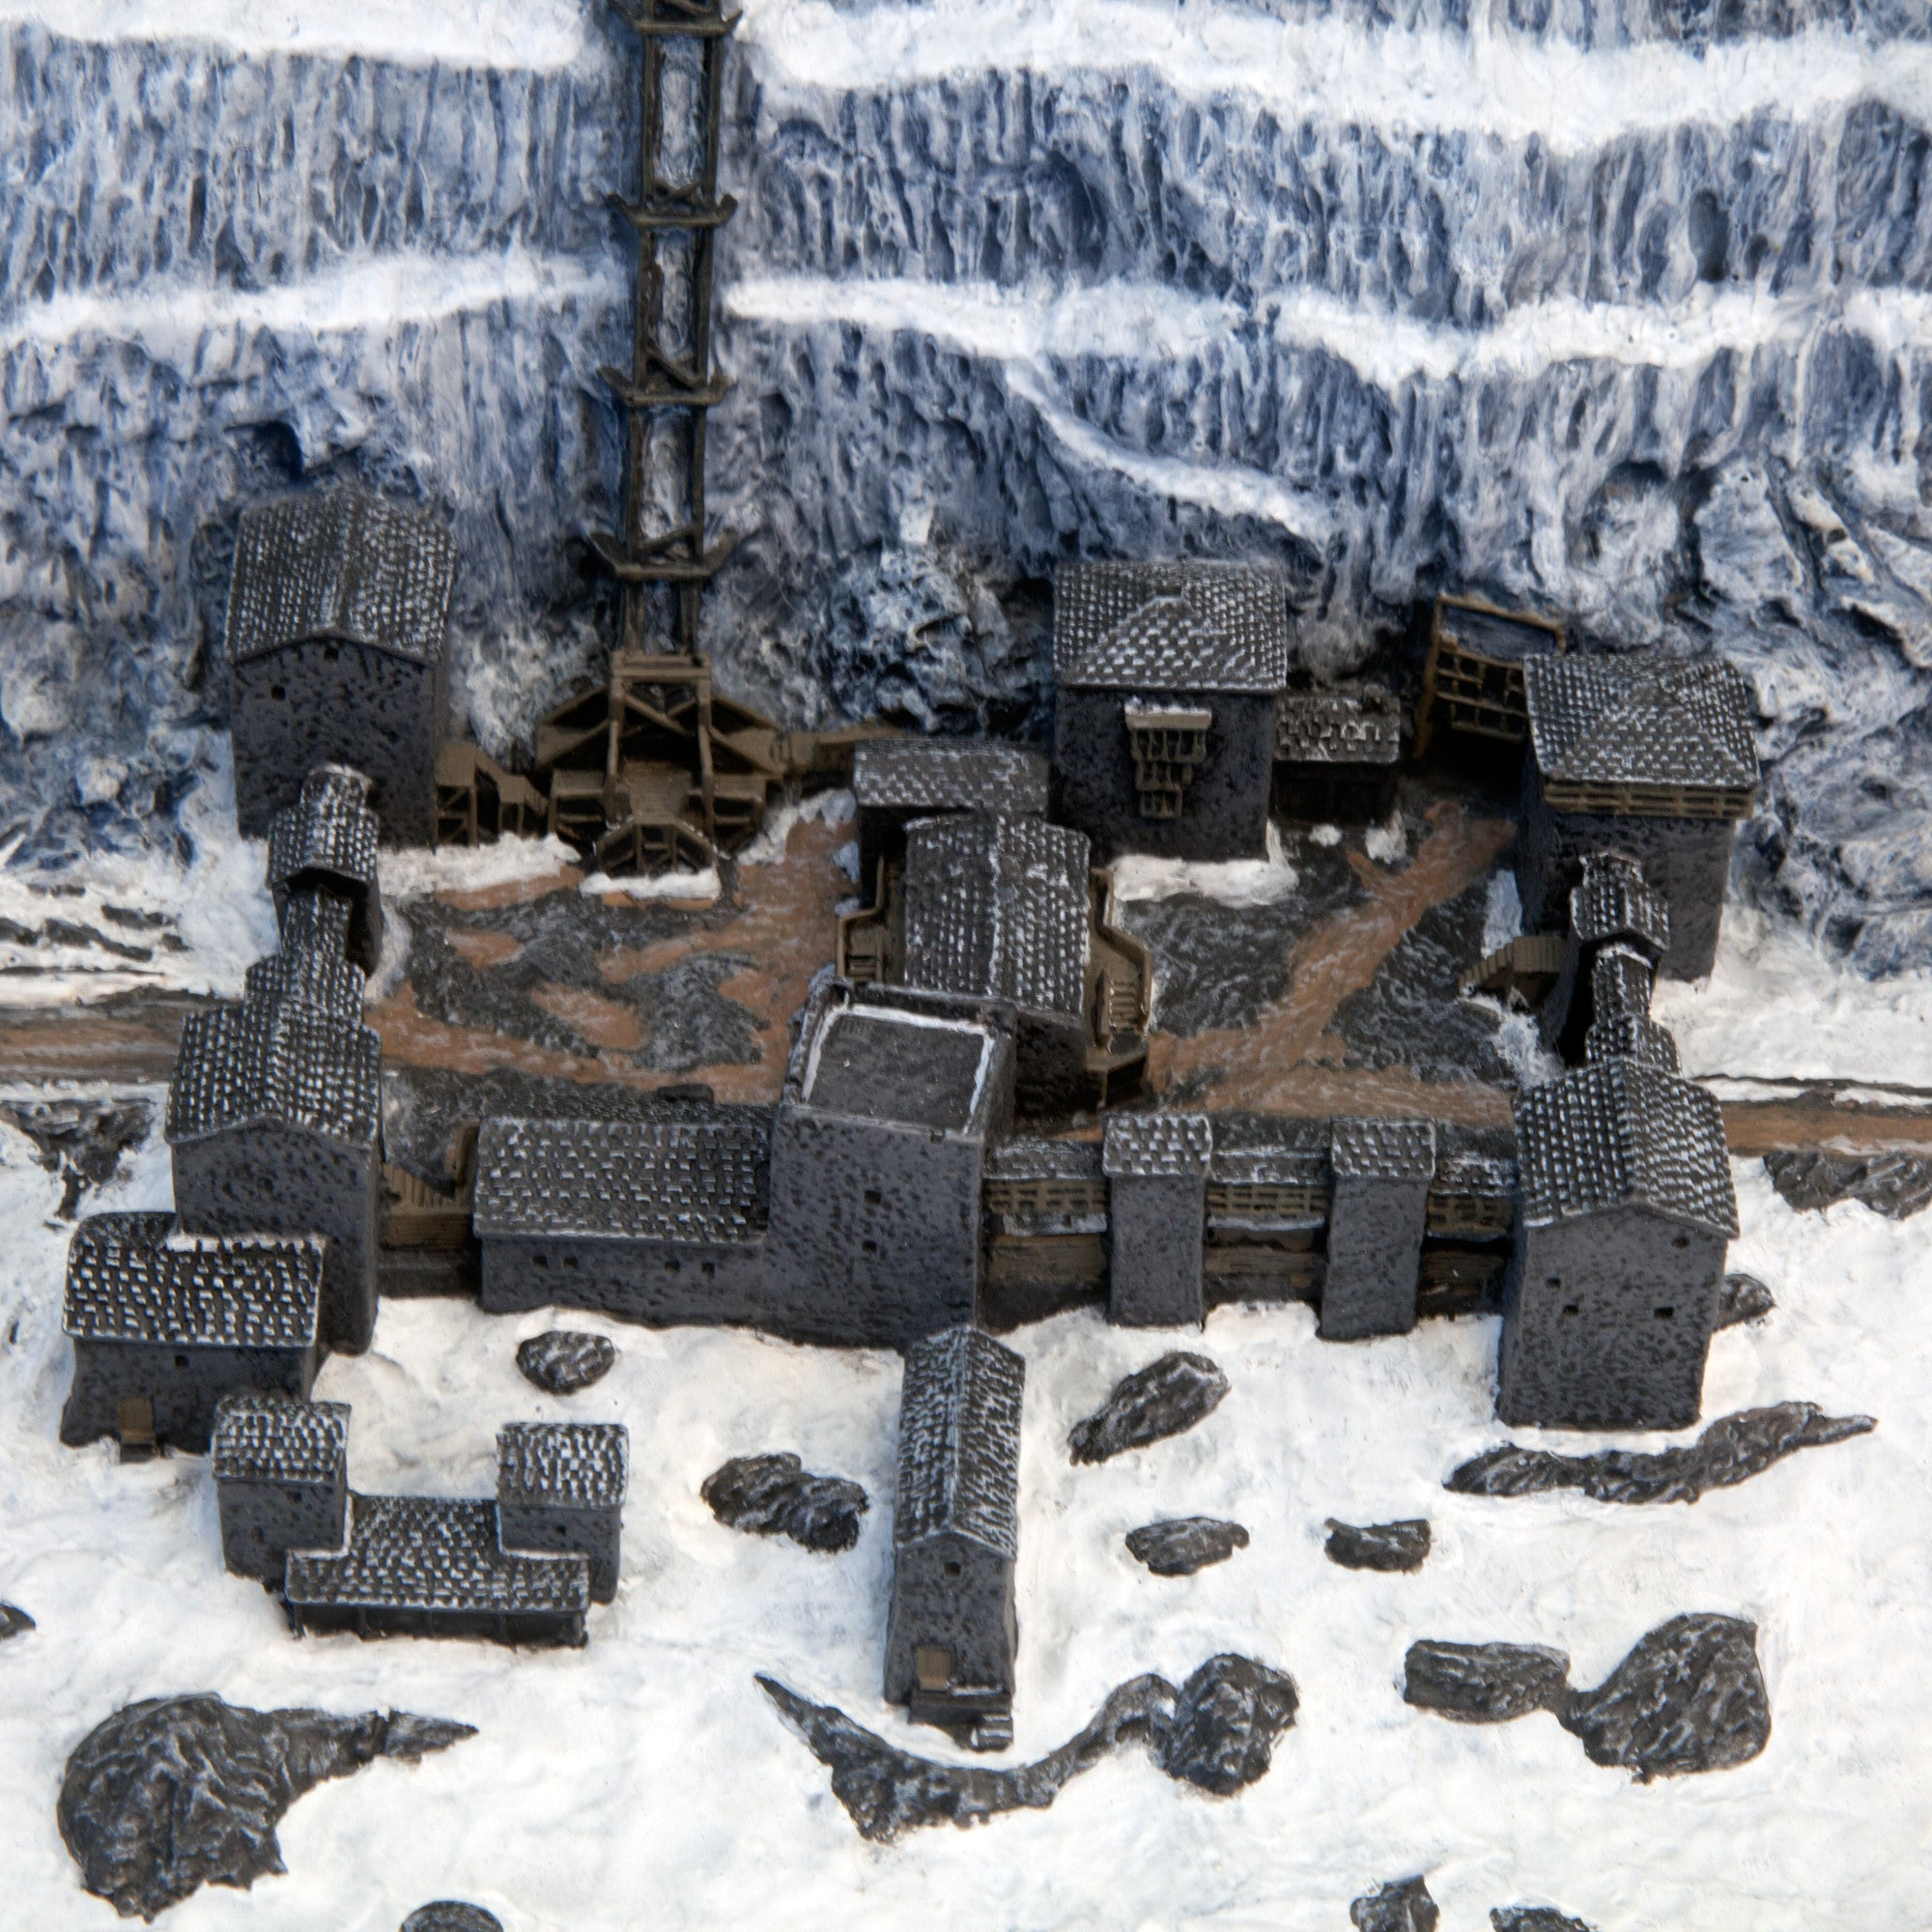 Game Of Thrones - Castle Black & The Wall Desktop Sculpture